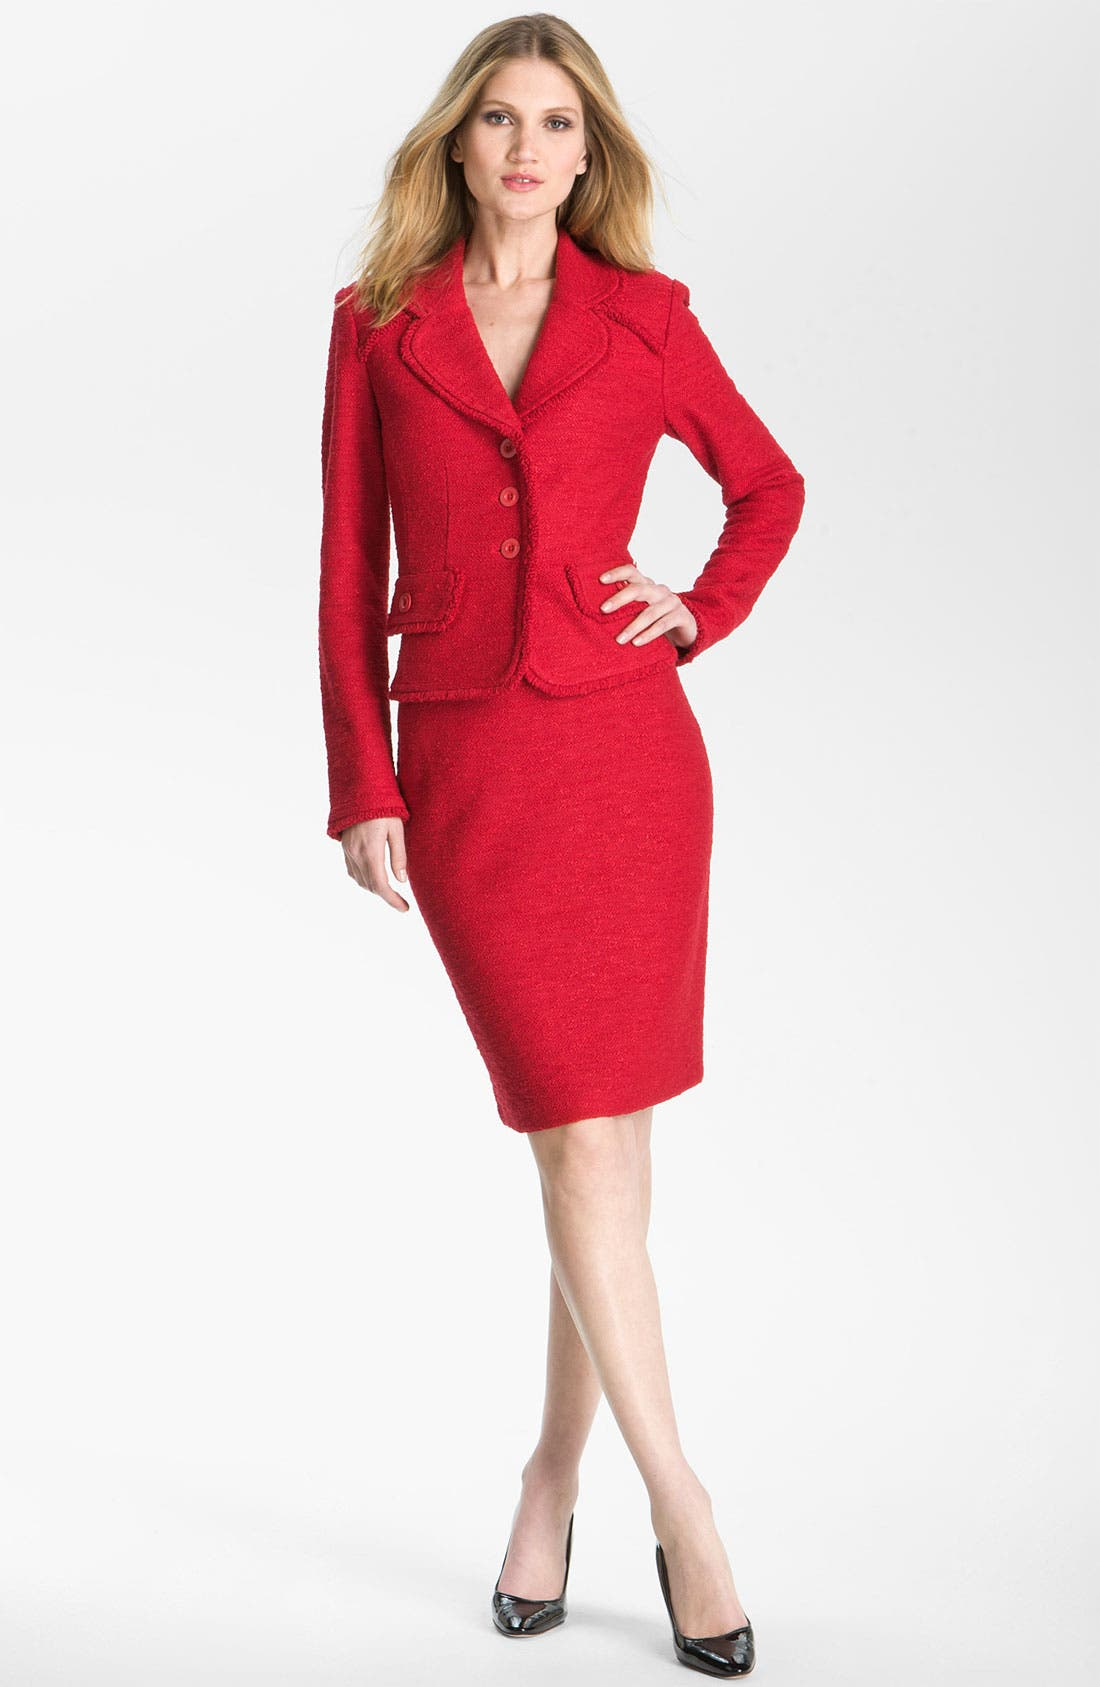 Alternate Image 1 Selected - St. John Collection Frise Knit Pencil Skirt